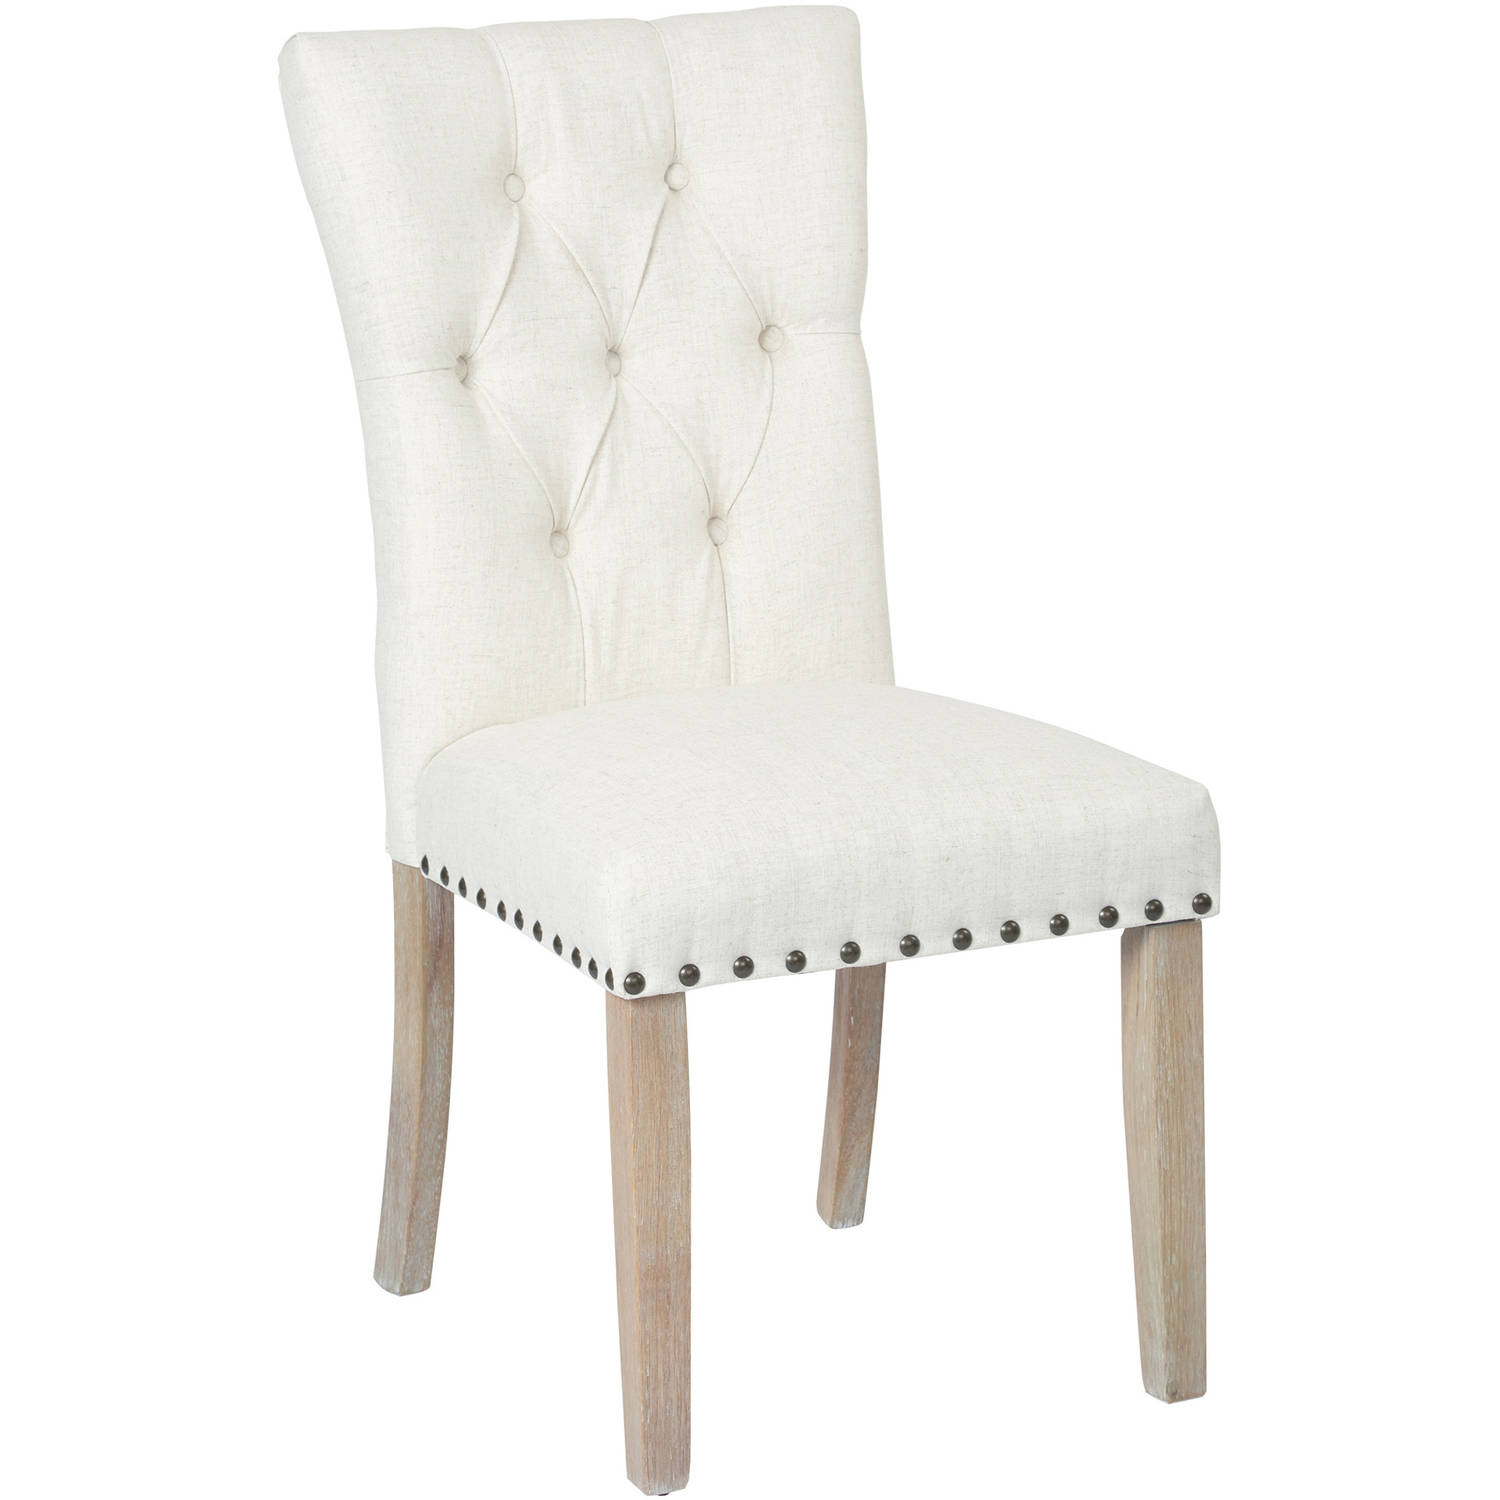 Preston Dining Chair With Nailheads And Brushed Legs, K/D, Various Colors